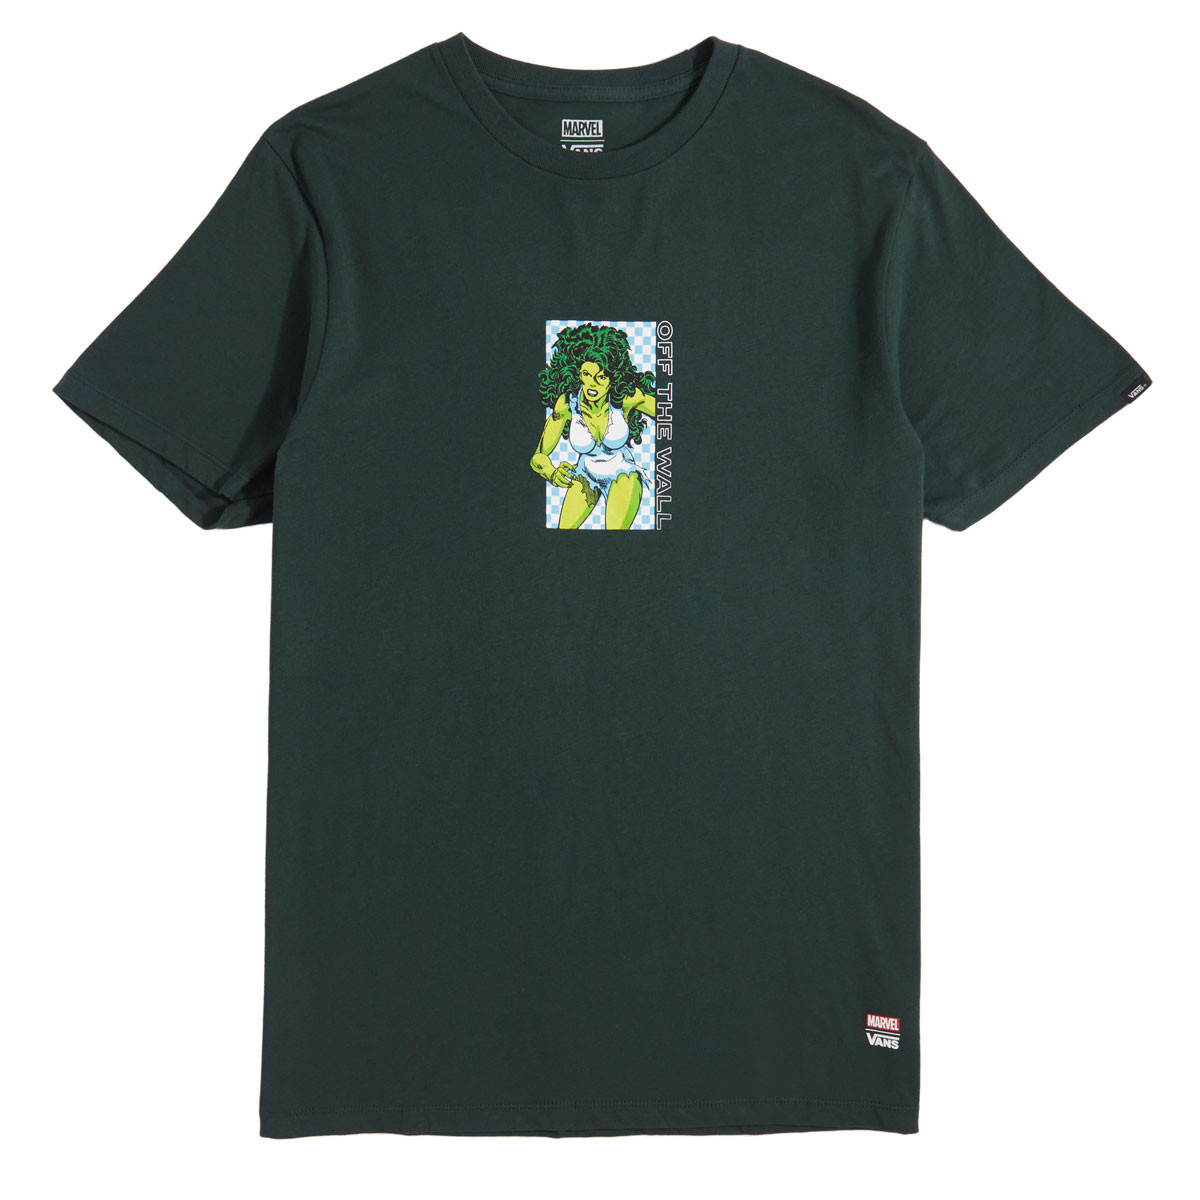 Vans x Marvel She Hulk T-Shirt - Darkest Spruce